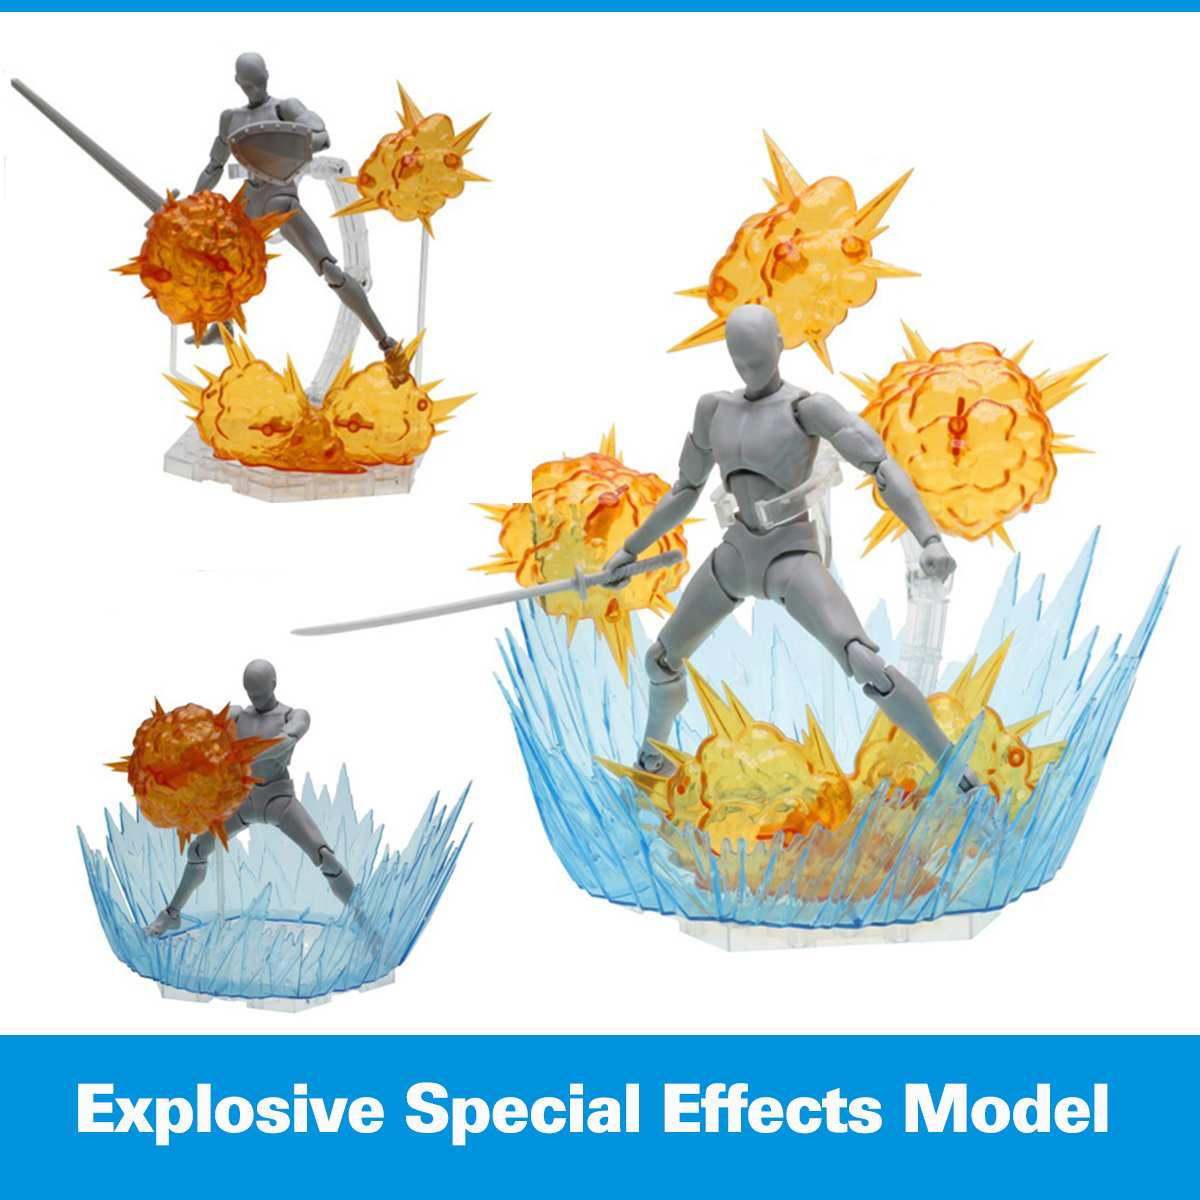 Star Soul Model Special Effects Series Star Soul Explosion Ground Crack Special Effects For Tamashii Effect Impact Toy ModelStar Soul Model Special Effects Series Star Soul Explosion Ground Crack Special Effects For Tamashii Effect Impact Toy Model